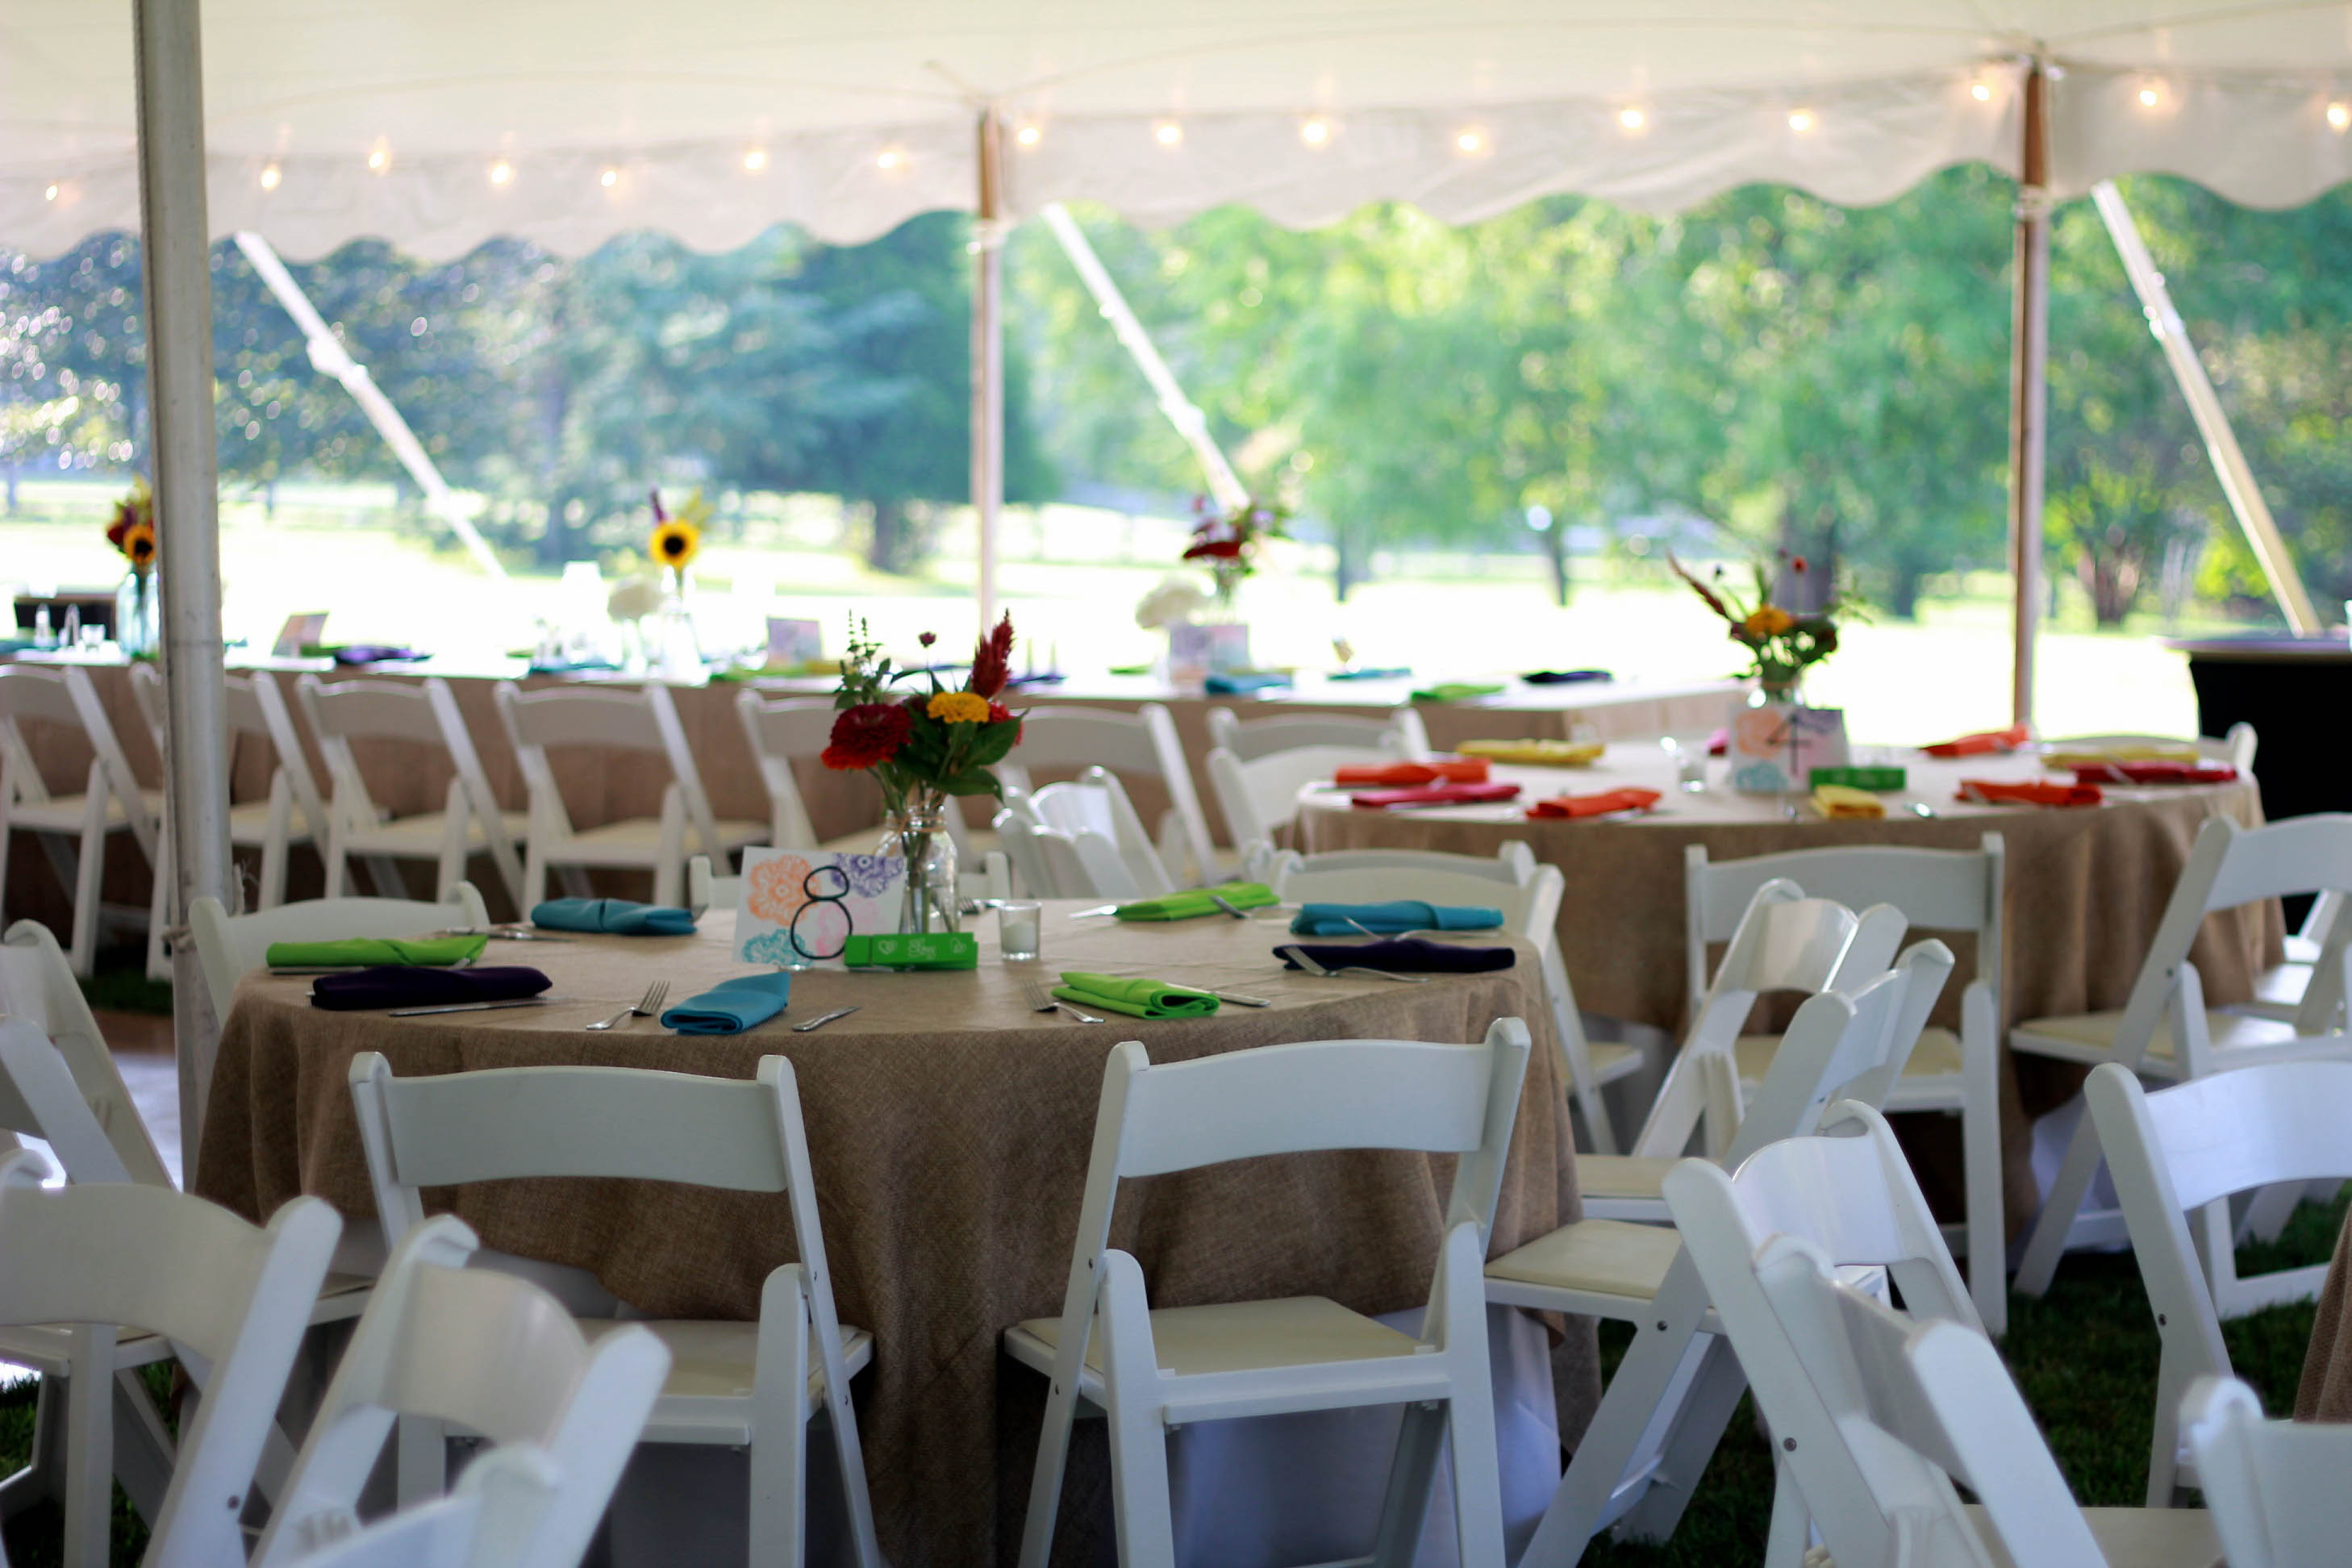 5 star rental gallery party and wedding rentals for denton and